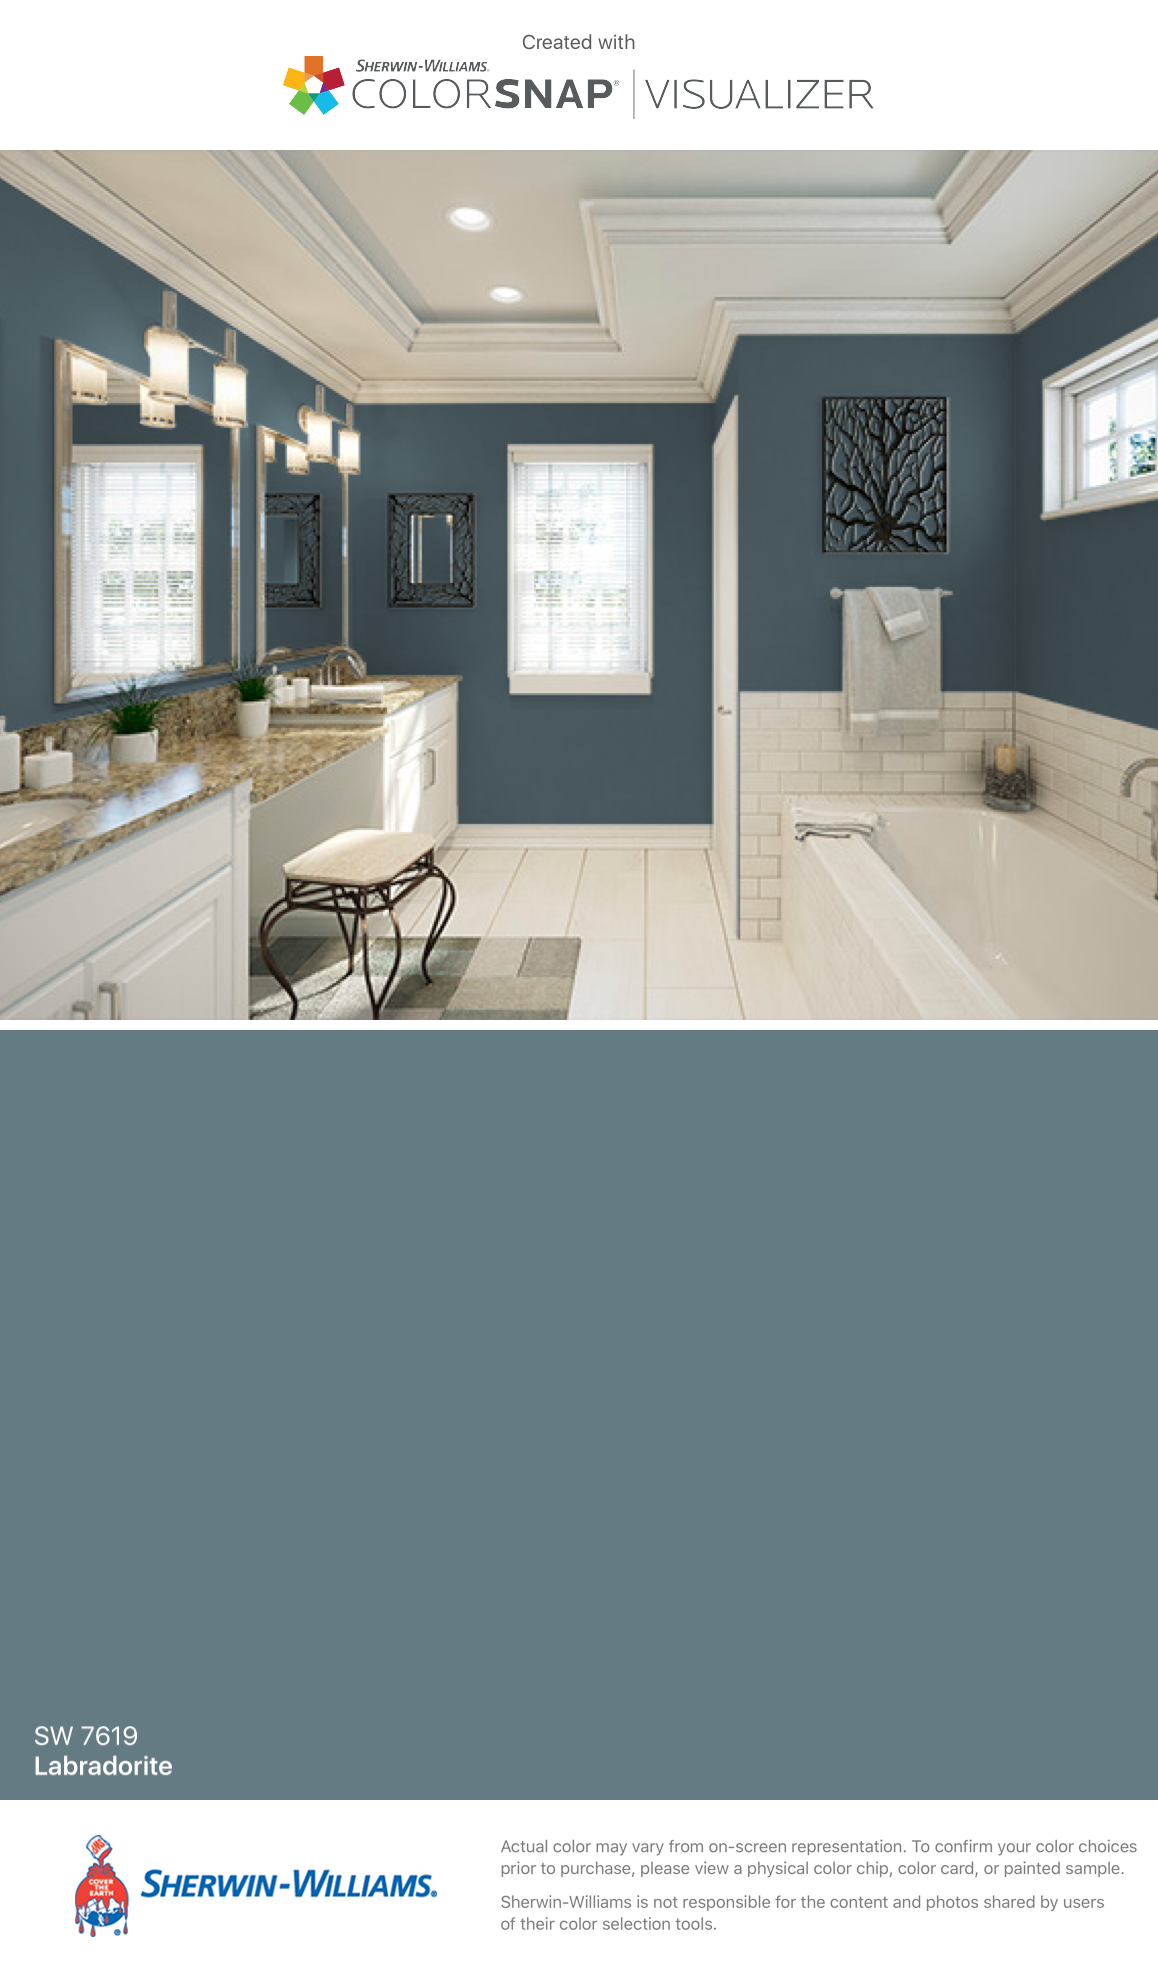 I Found This Color With Colorsnap Visualizer For Iphone By Sherwin Williams Labradorite Sw 7619 In 2020